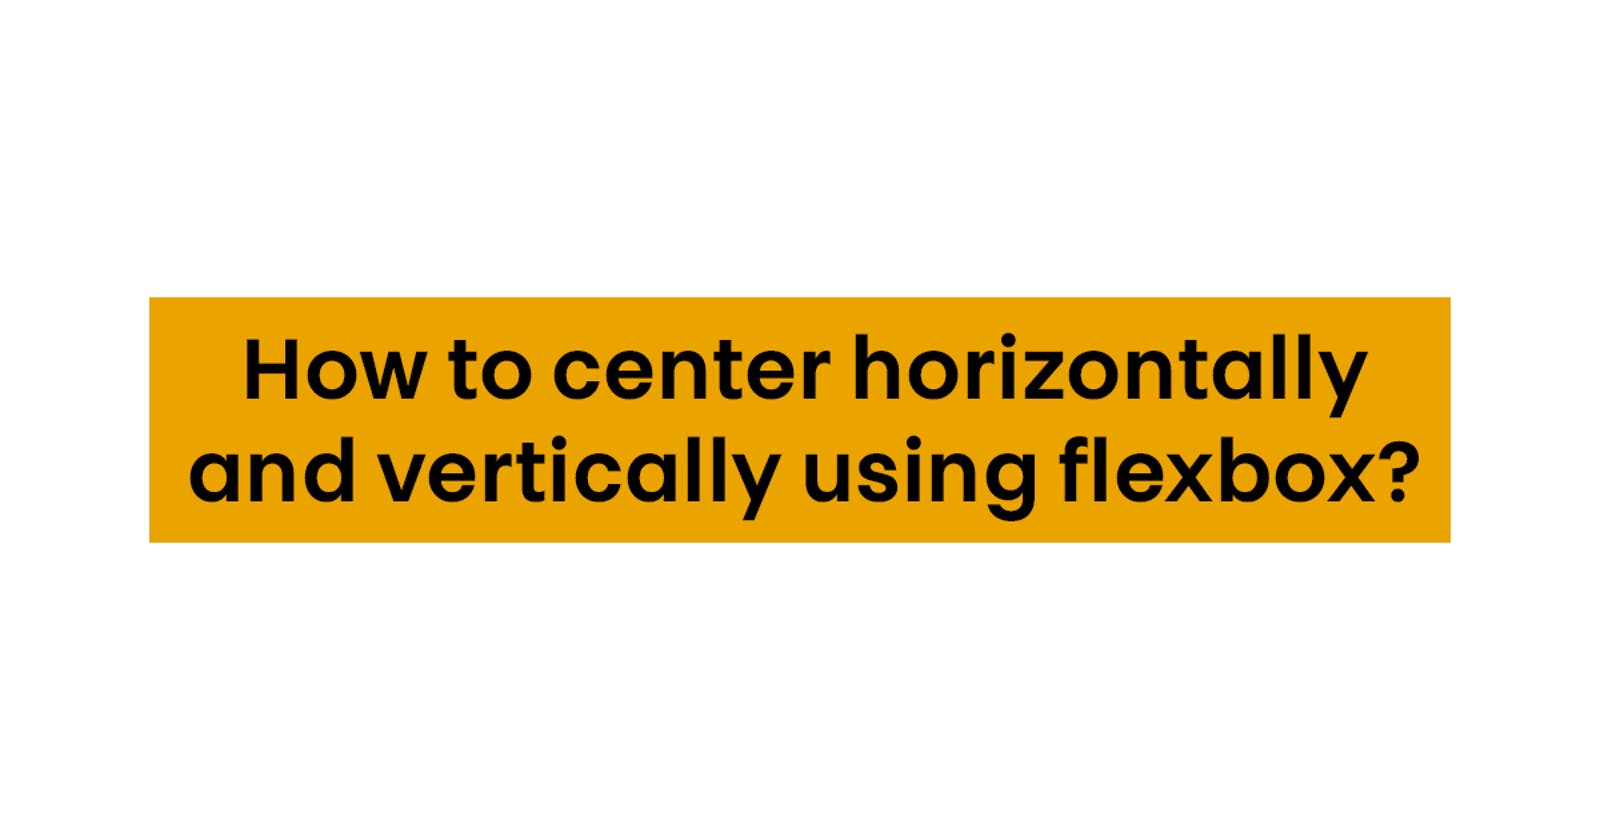 How to center horizontally and vertically using flexbox? (HTML/CSS)